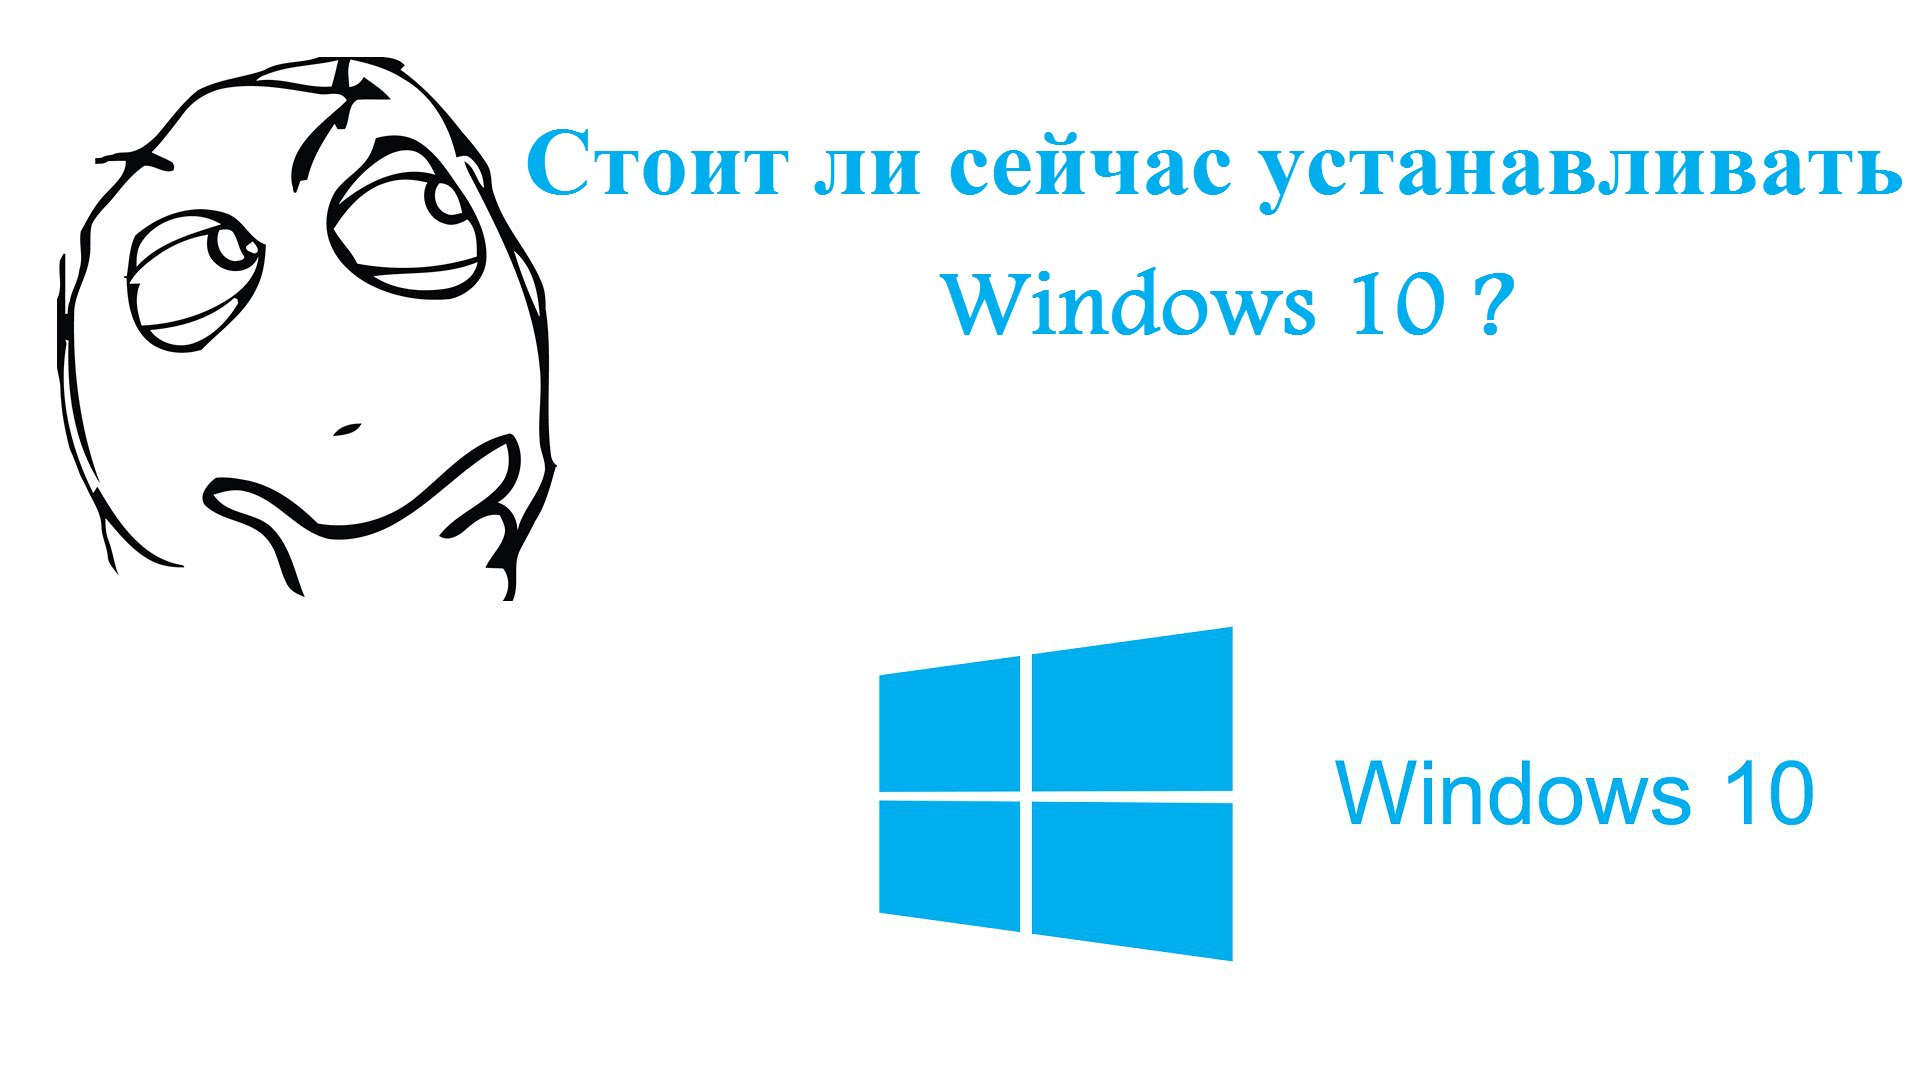 стоит ли устанавливать windows 10